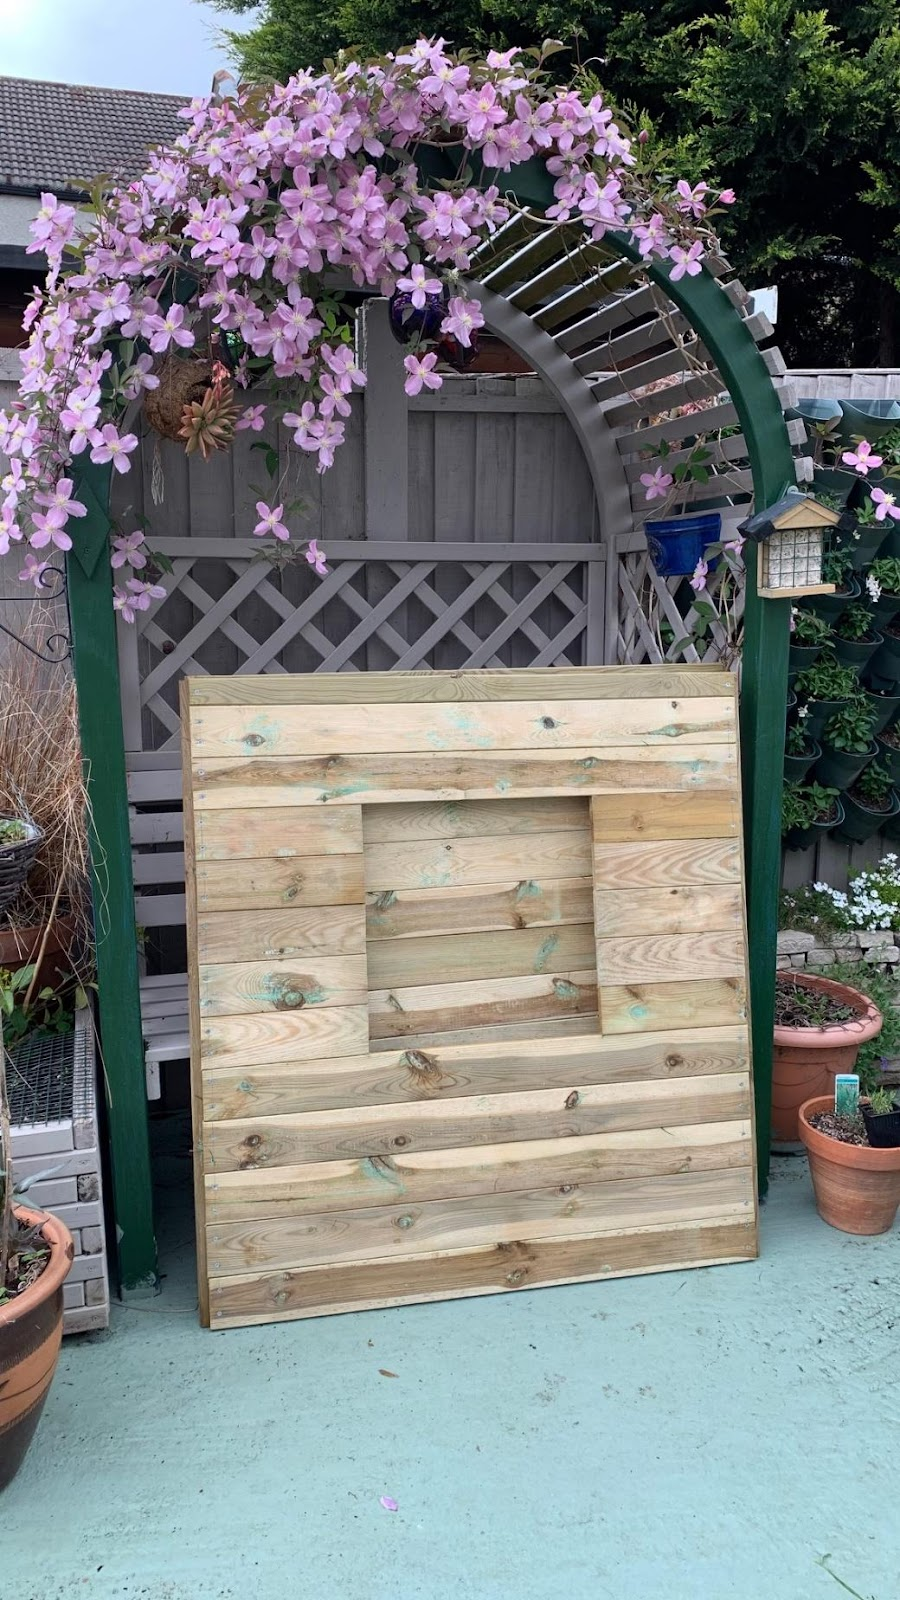 Build the sides of the DIY playhouse